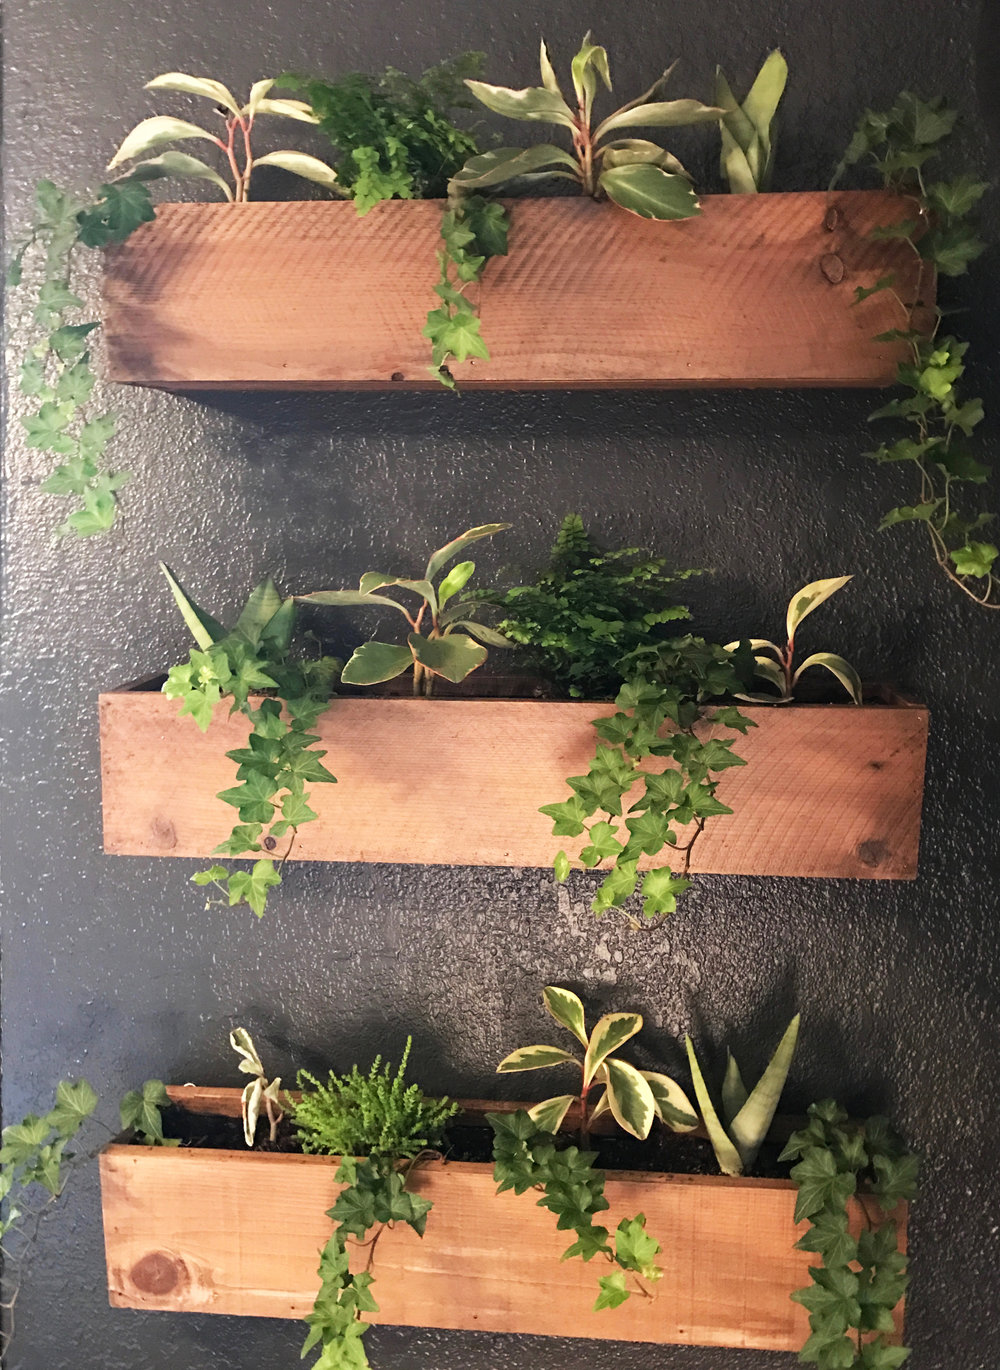 living wall | diy | step by step instructions | directions | reclaimed fence boards | reclaimed barnwood | project | DIY project | easy to make